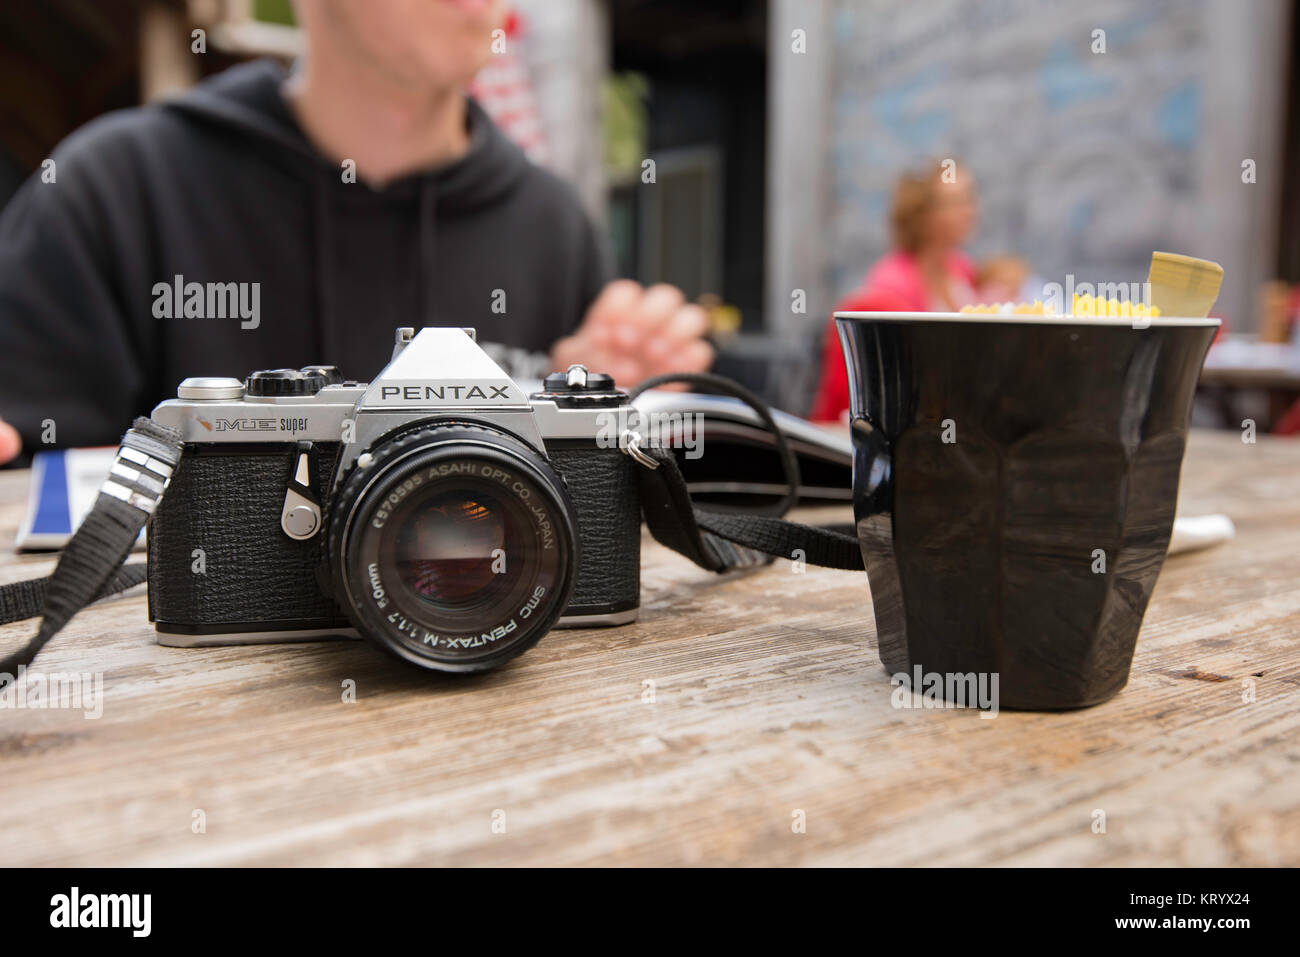 An old 35mm SLR film camera sitting on a table in a coffee shop - Stock Image